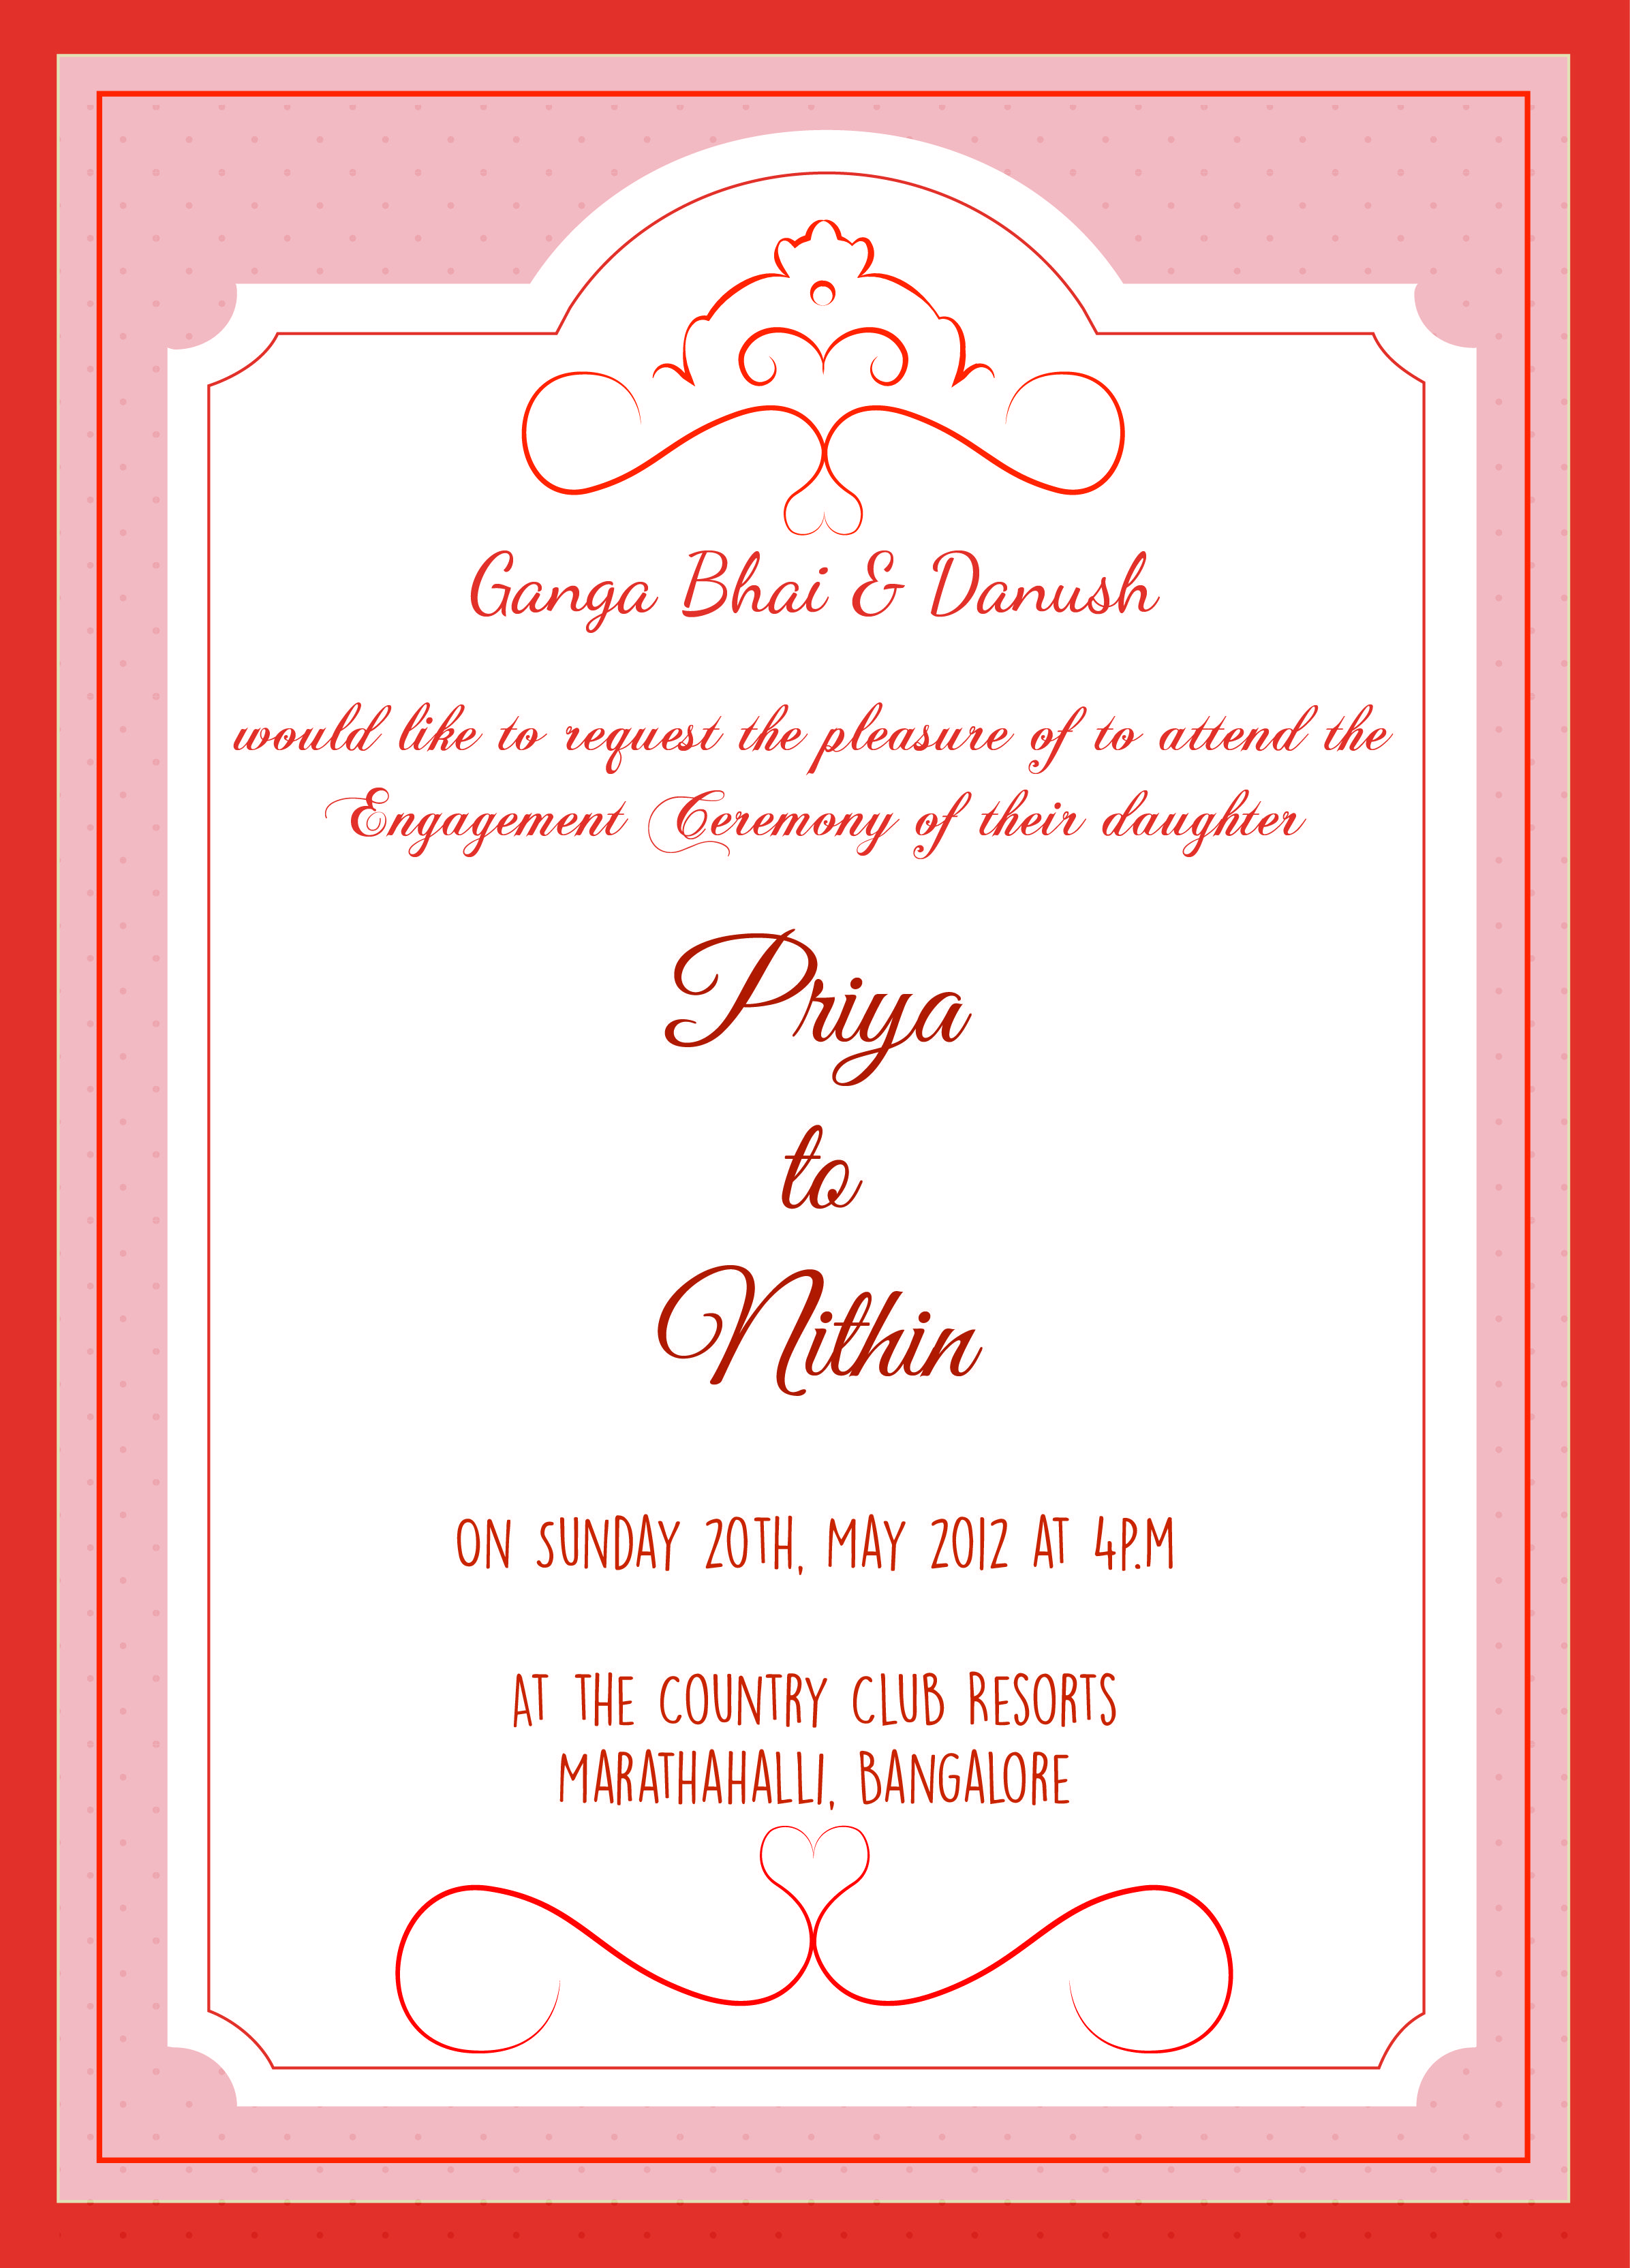 Superior Engagement Ceremony Invitation Card With Wordings Check It Out! Pertaining To Engagement Invitation Matter